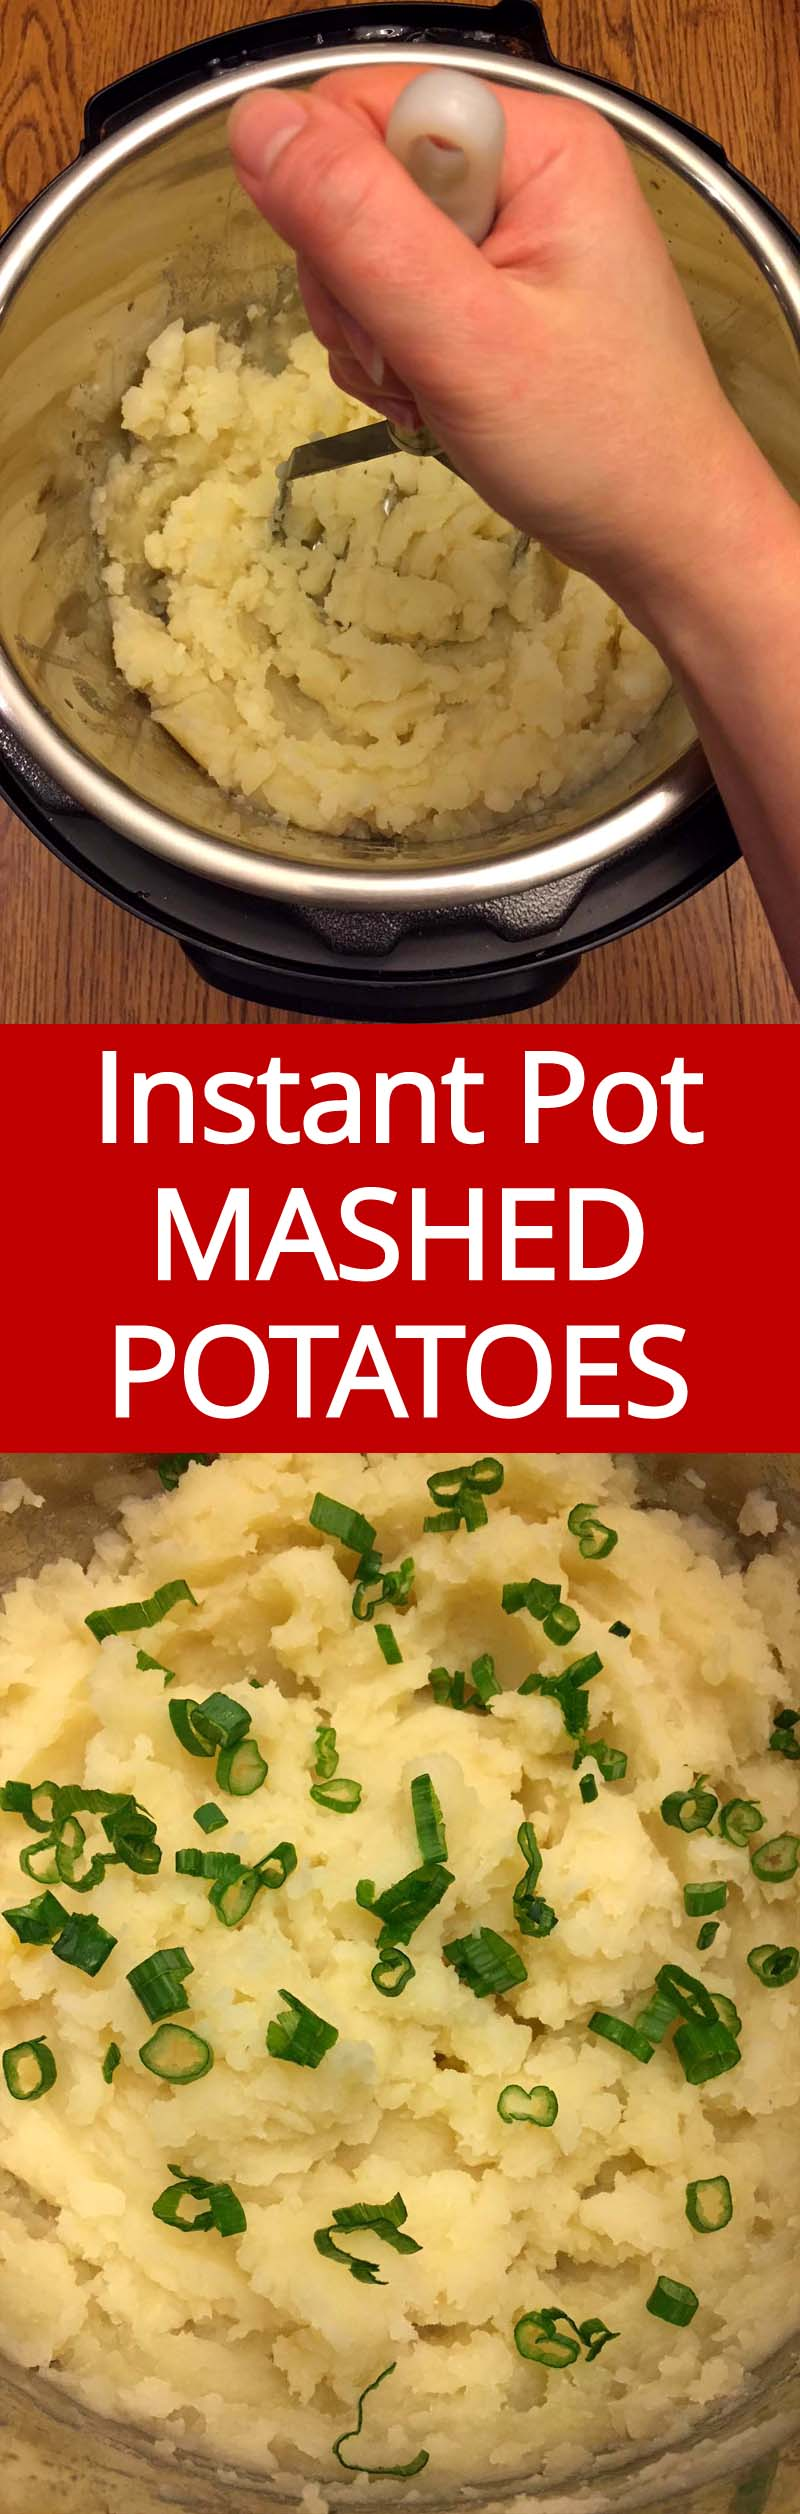 I love Instant Pot mashed potatoes! This is the easiest way of making mashed potatoes ever! They turn out perfect!